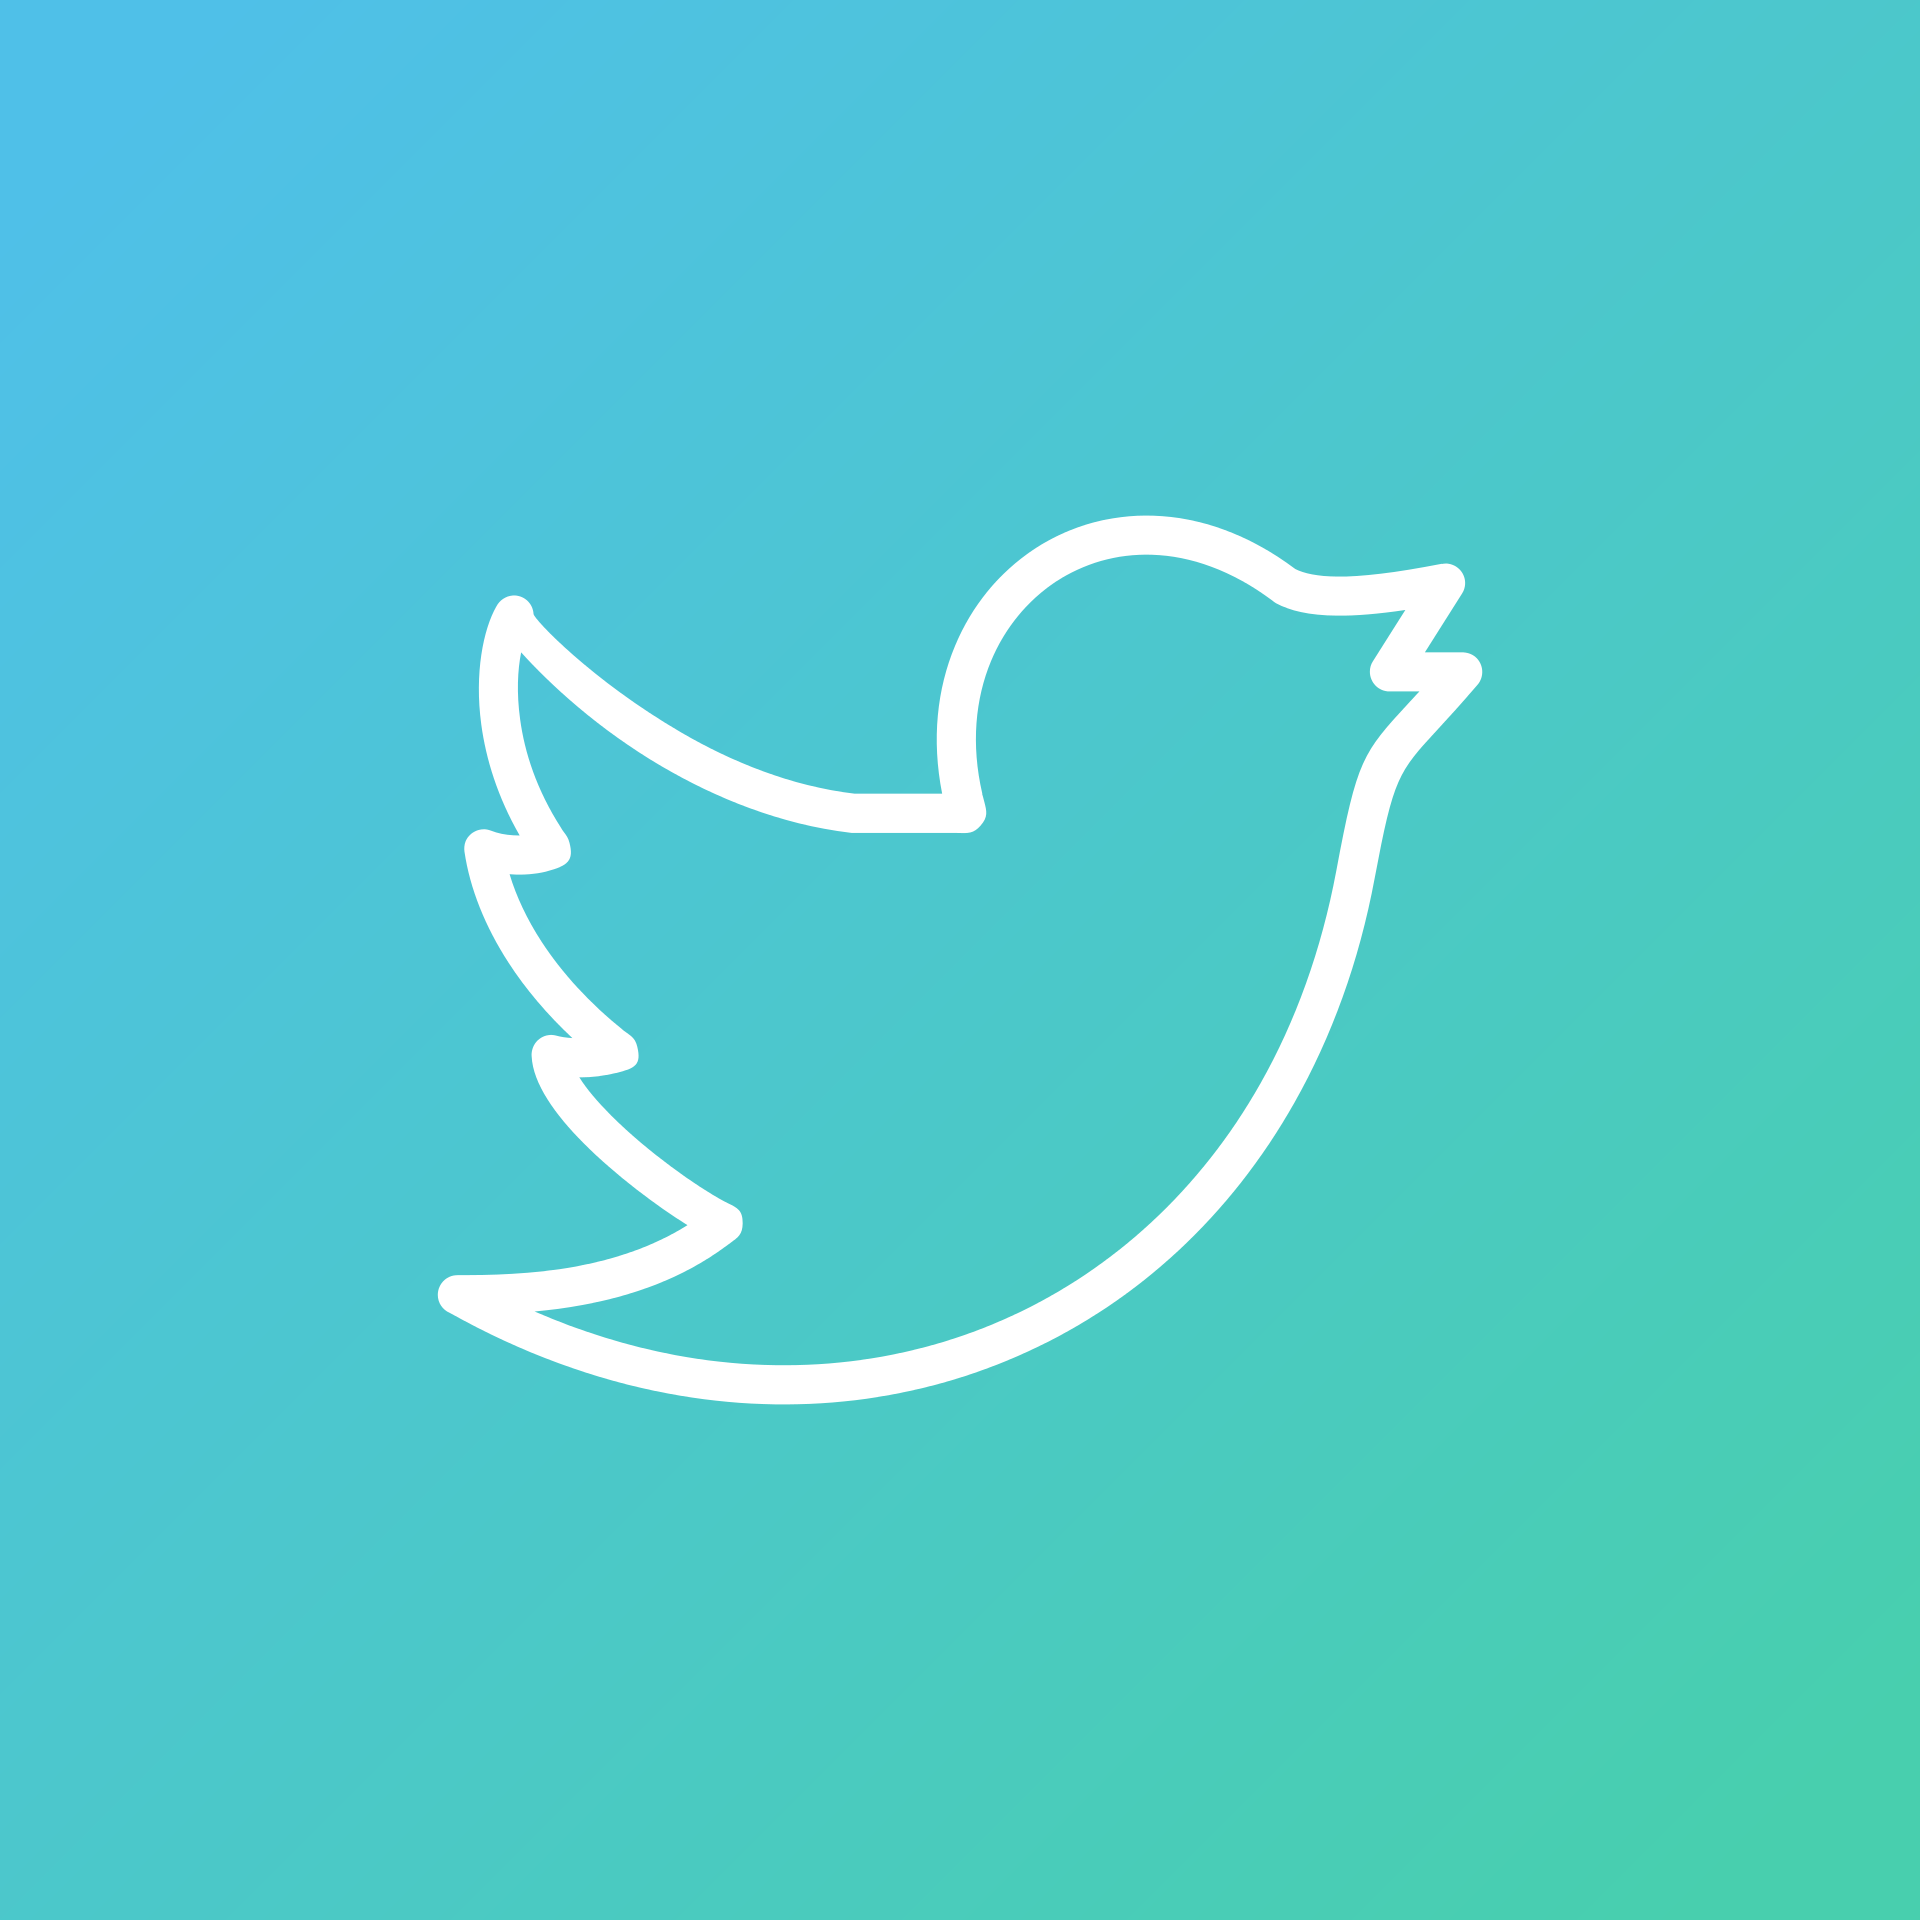 How to analyze tweets emotions using python